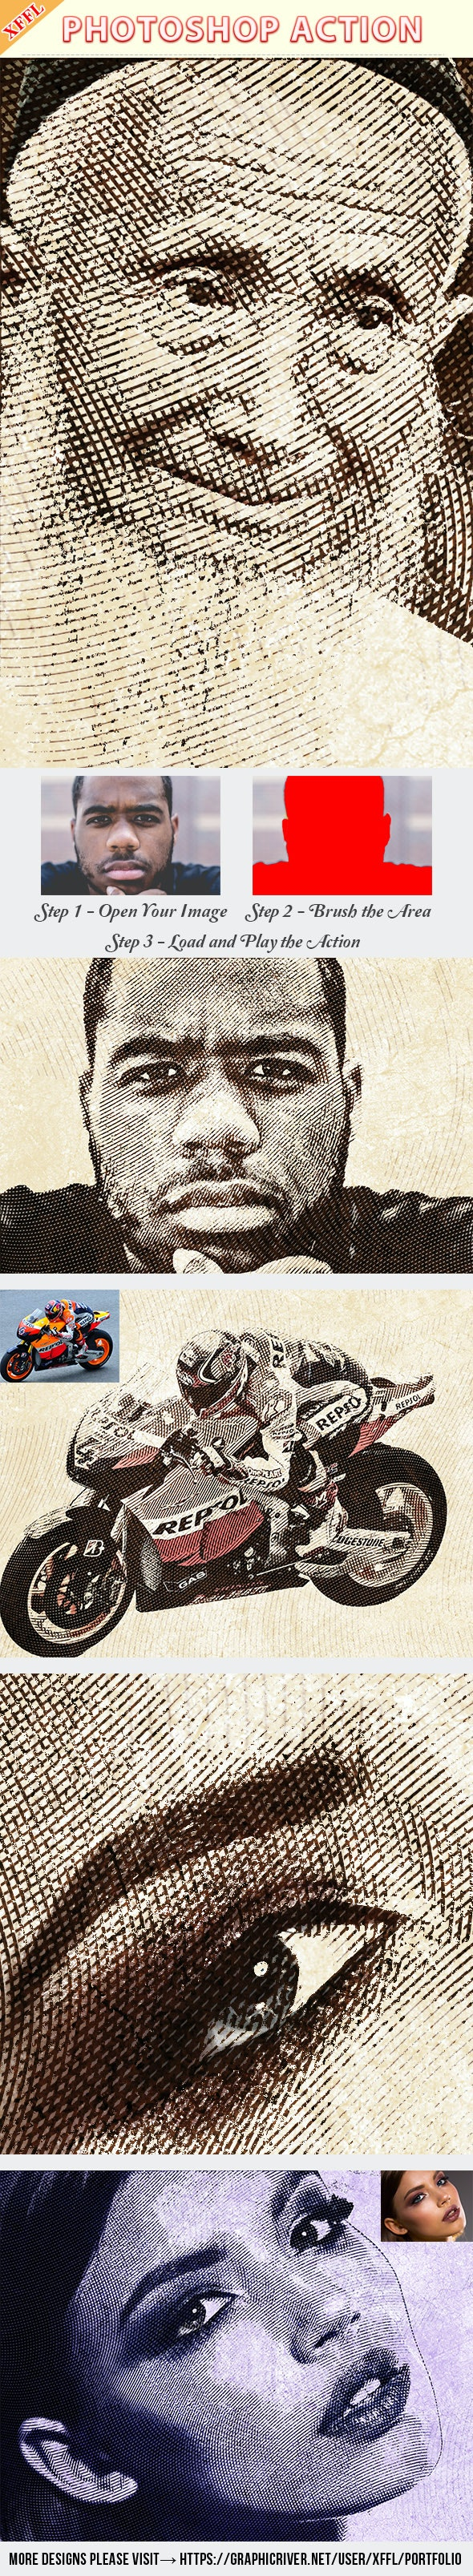 Engraved Illustration Photoshop Action - Photo Effects Actions